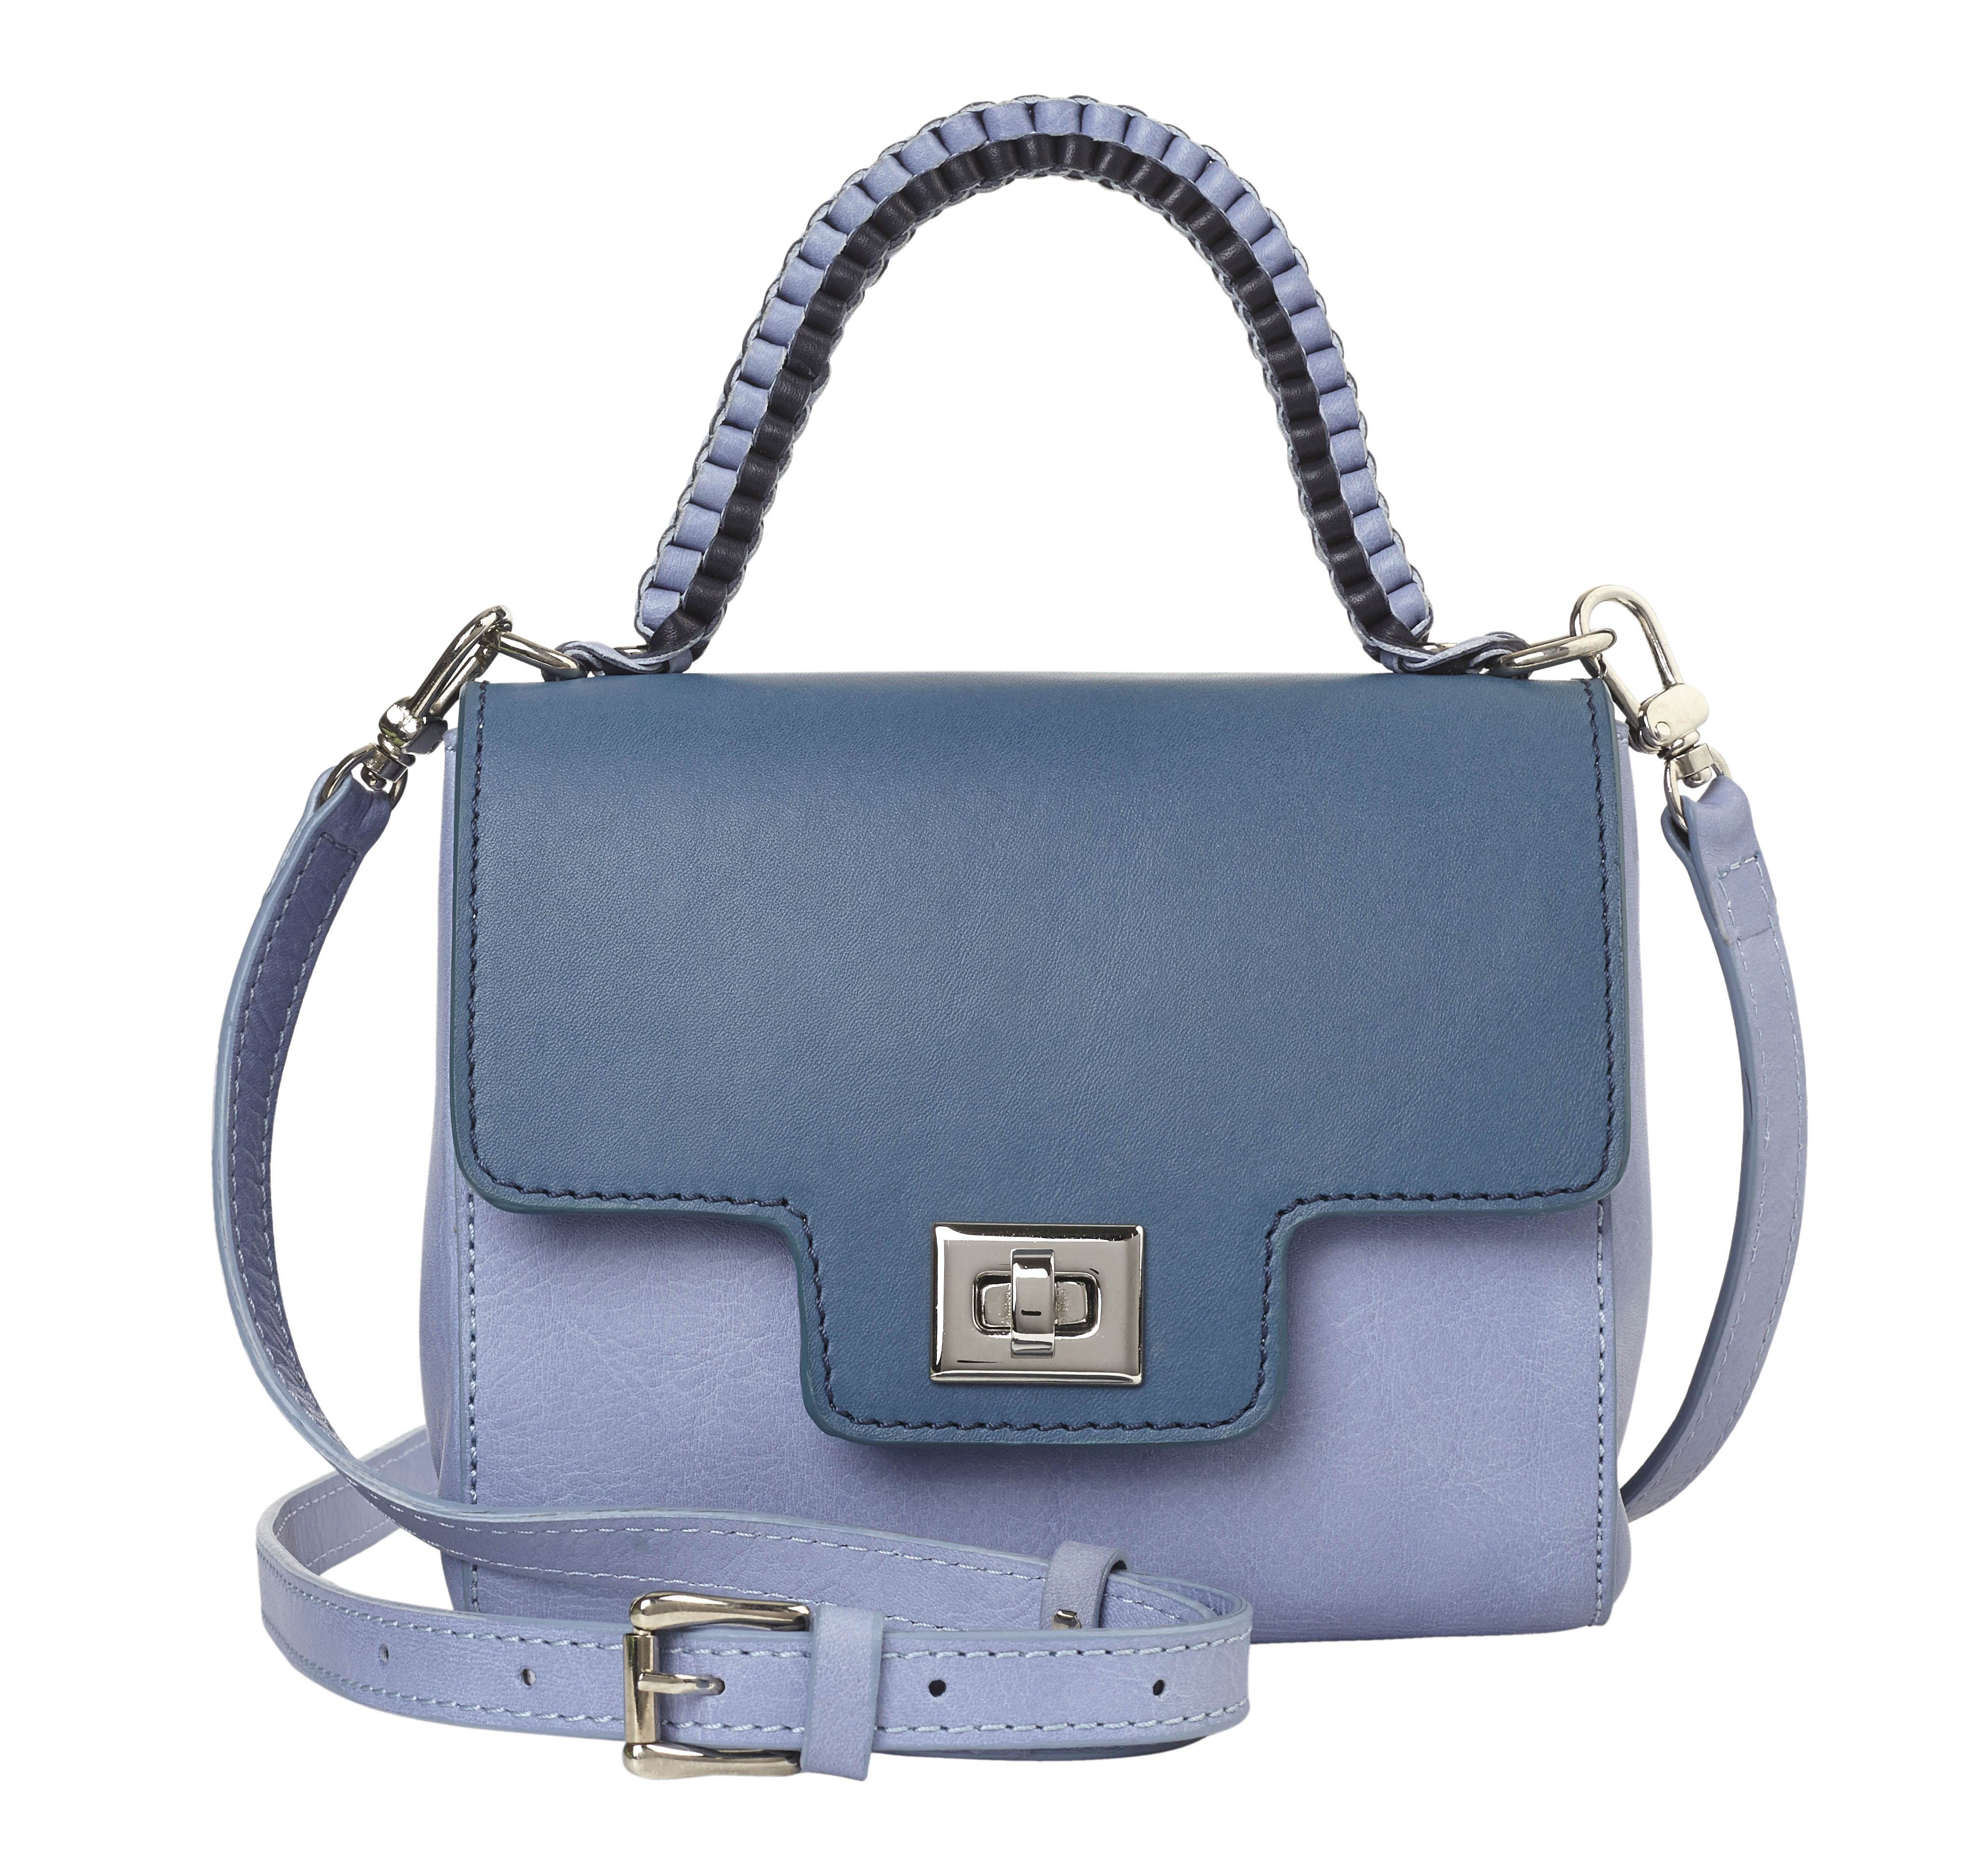 Miniature Bag Baby Blue/Iconic Blue